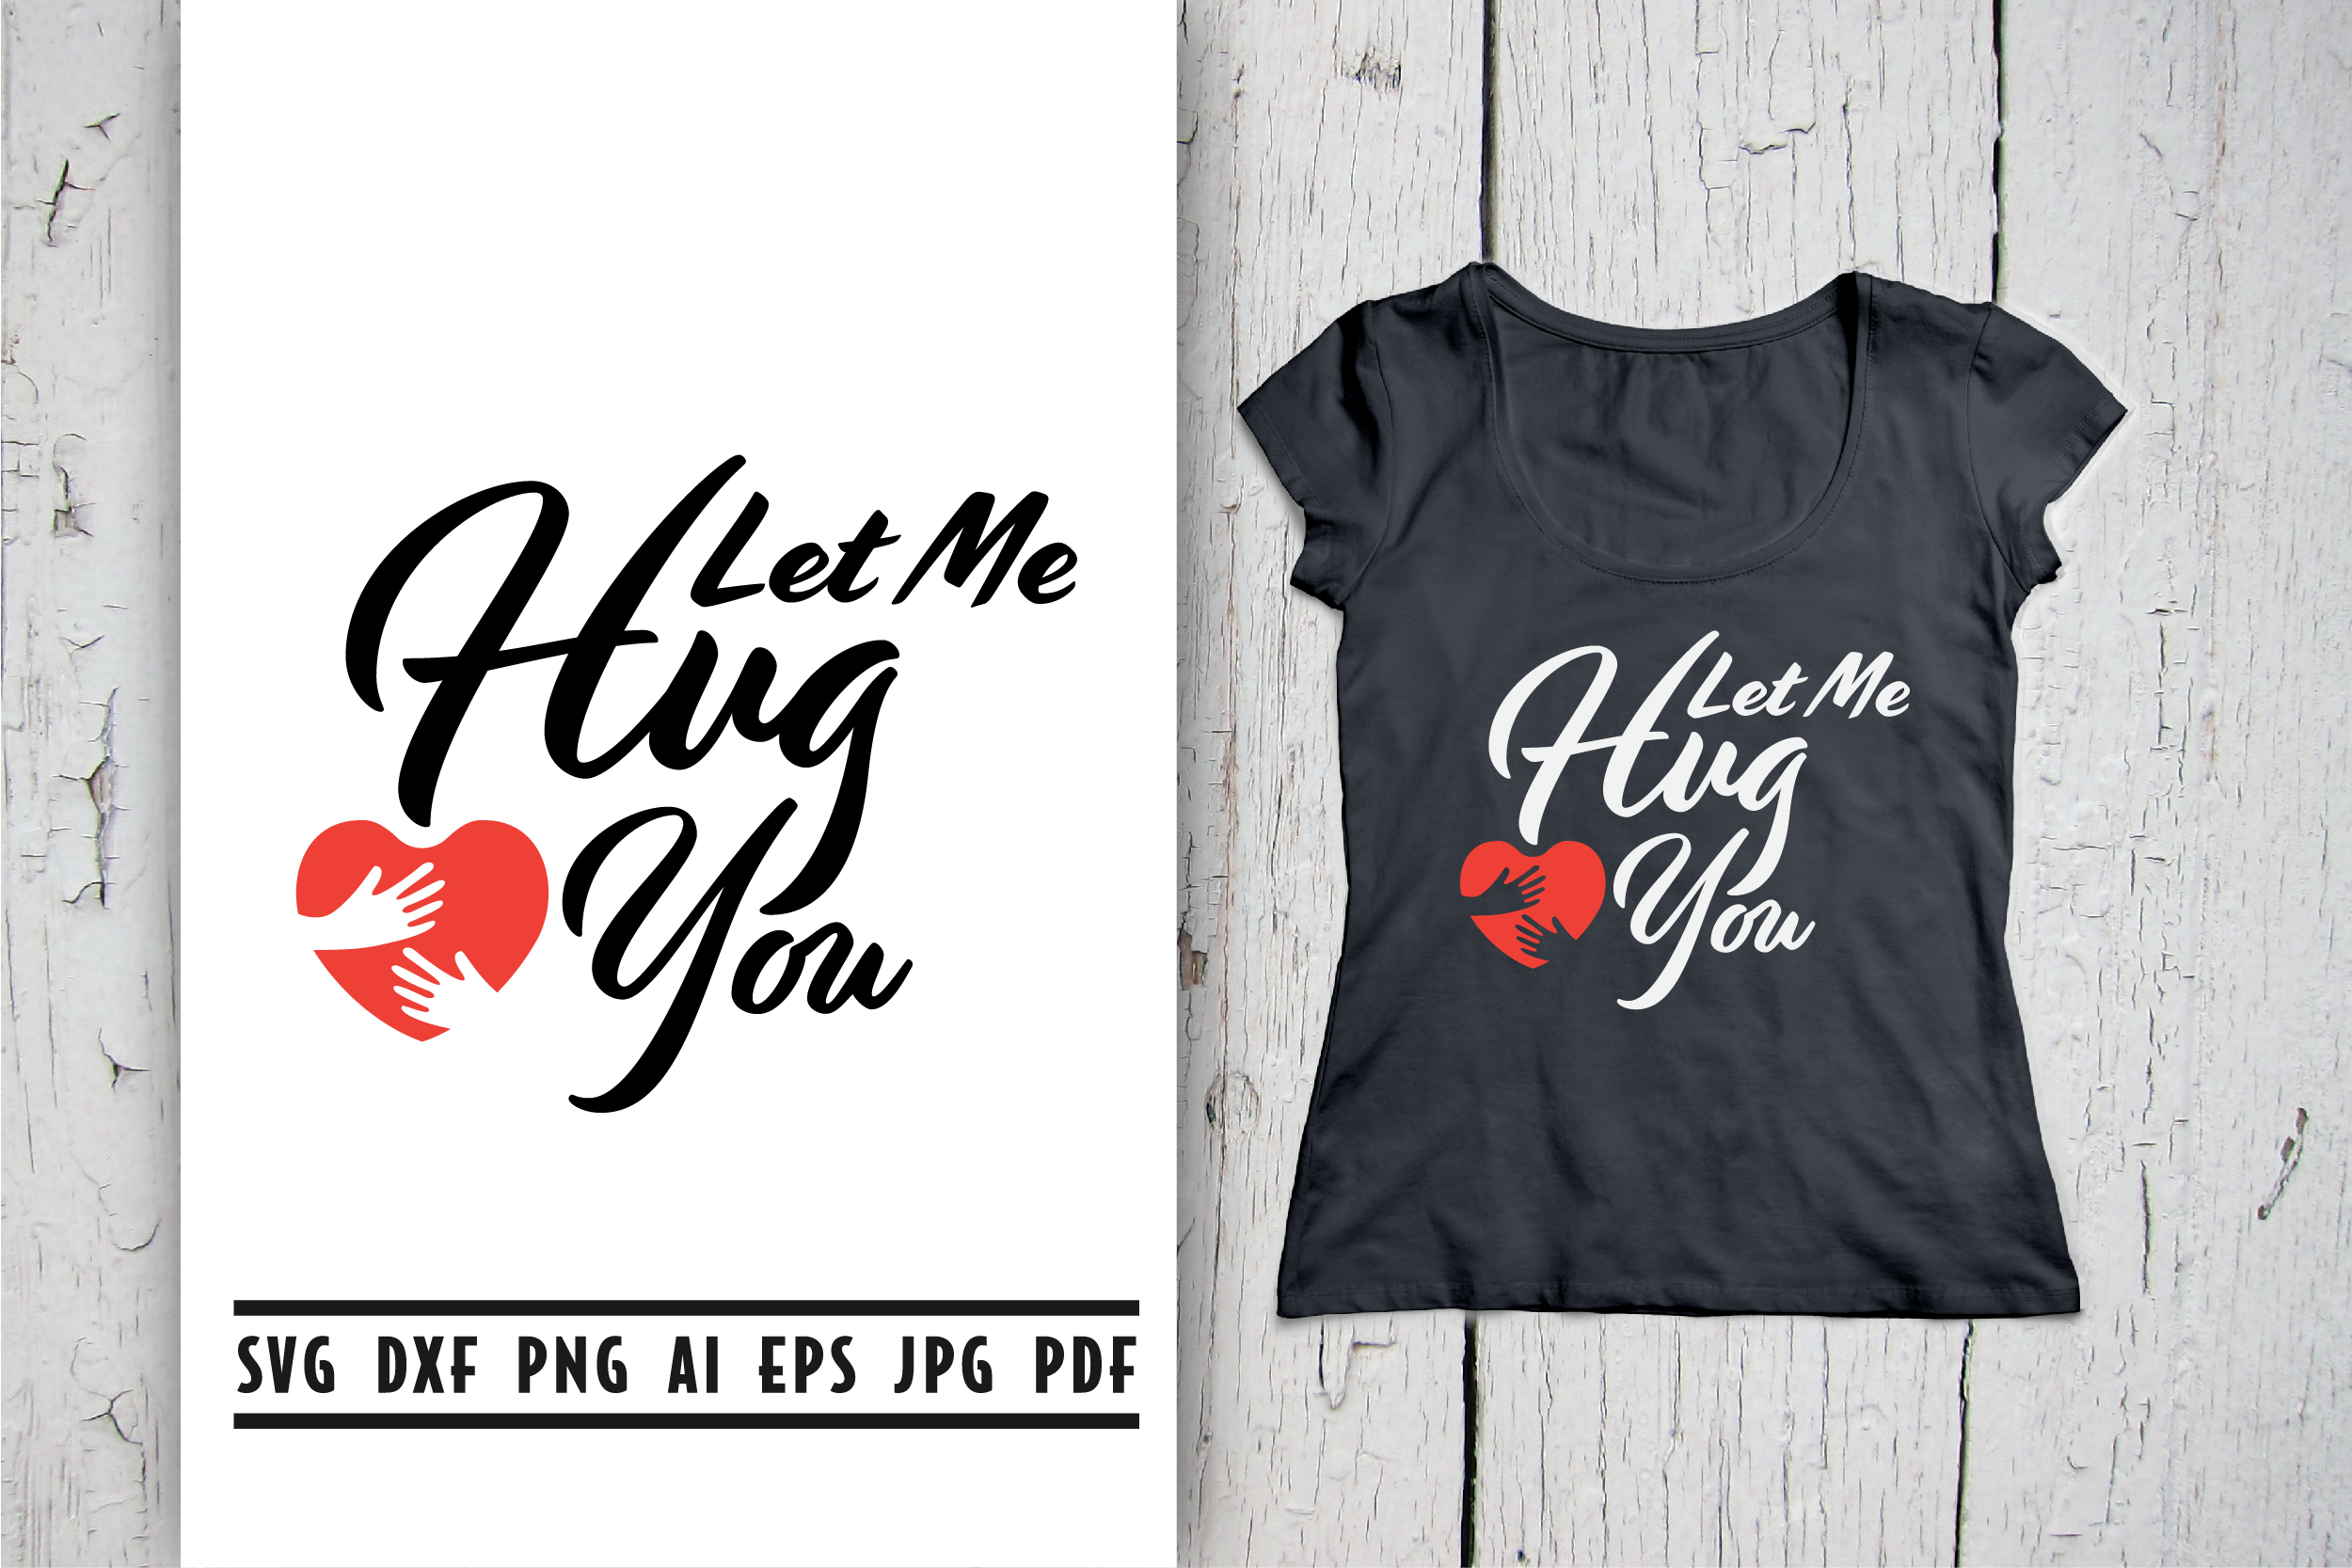 Download Free Let Me Hug You Quote Lettering Graphic By Vectorbundles for Cricut Explore, Silhouette and other cutting machines.